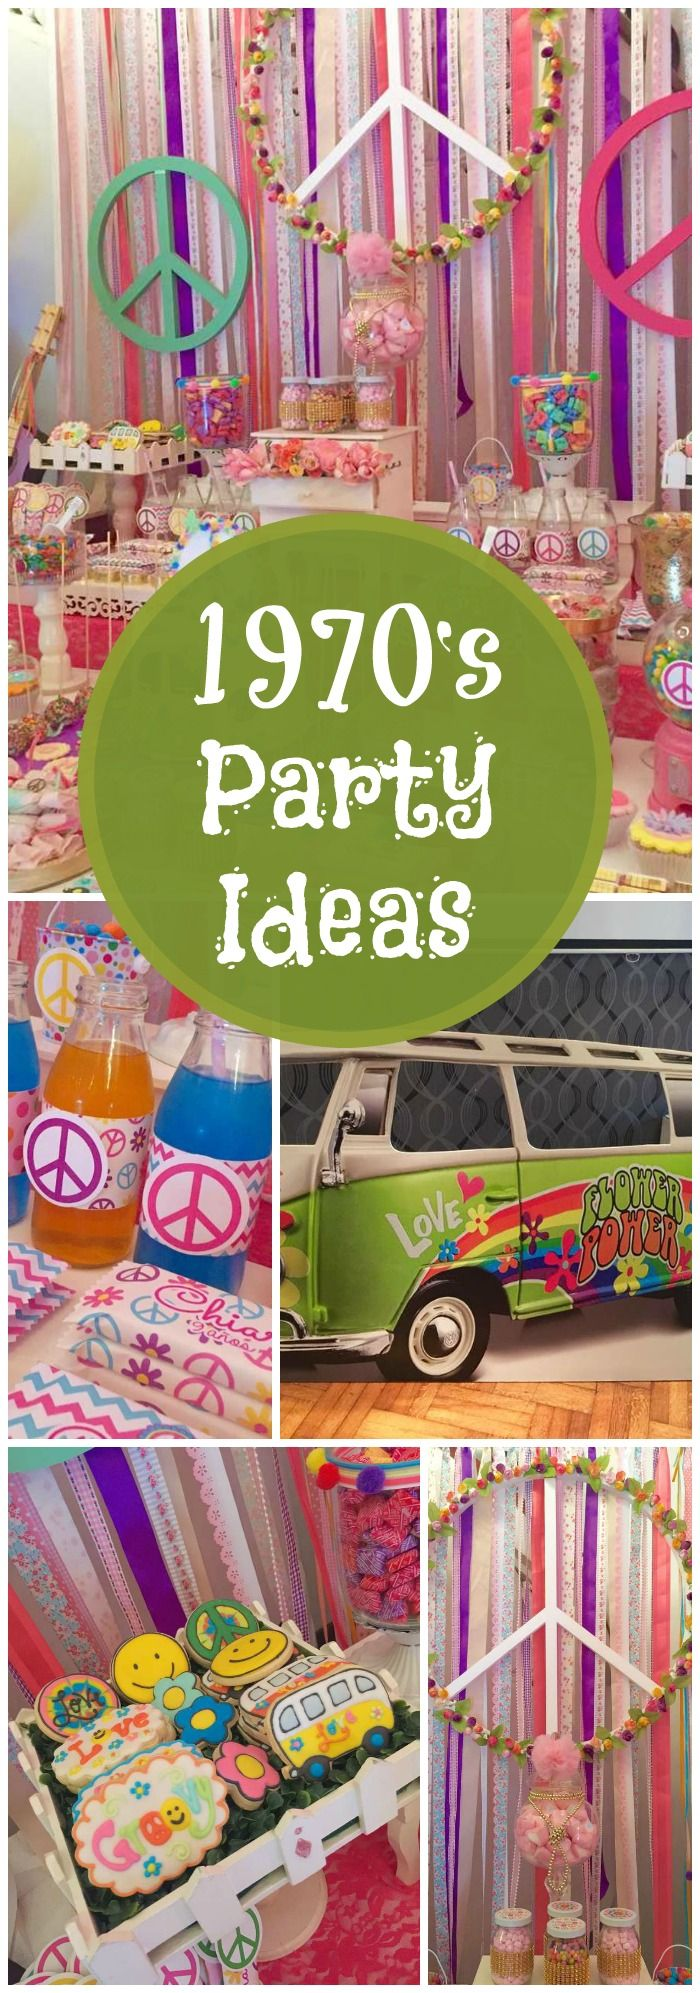 hippie chic birthday give peace a chance hippie chic peace and 70s party. Black Bedroom Furniture Sets. Home Design Ideas